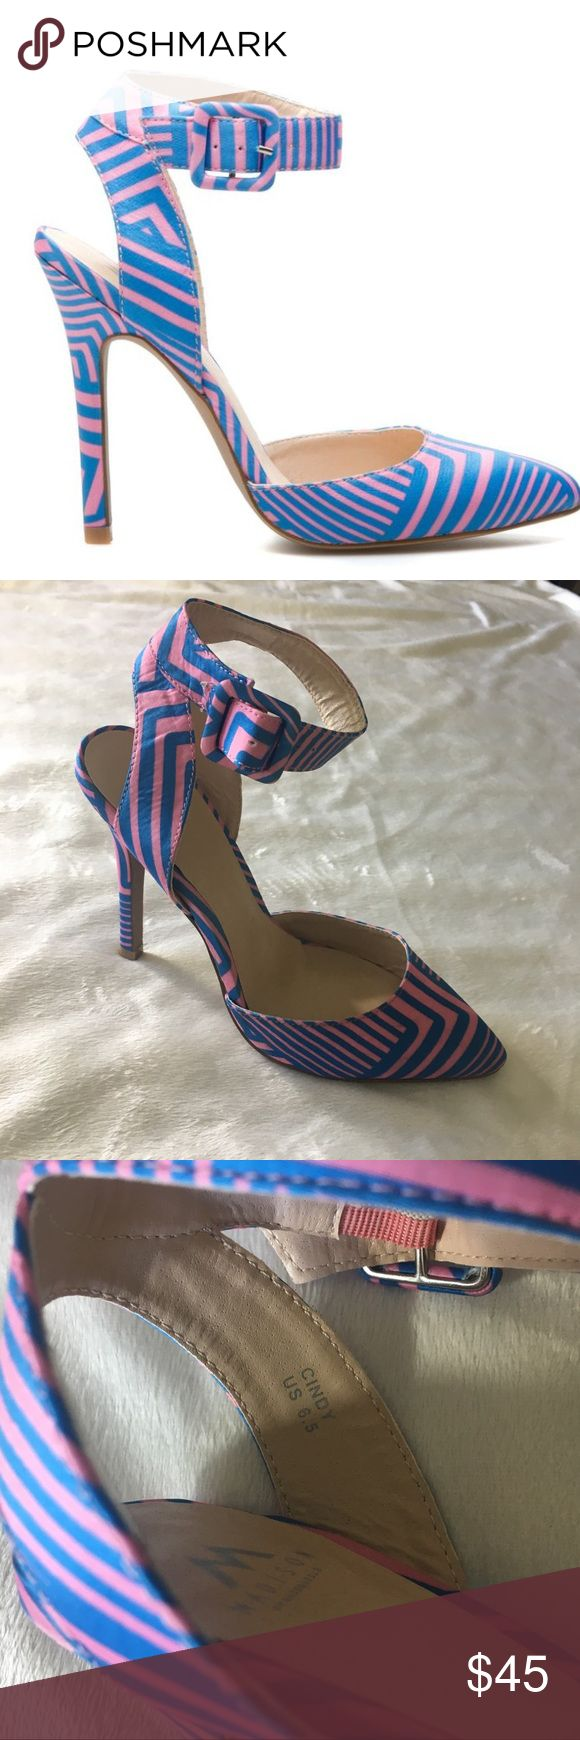 Madison by Shoe Dazzle Cindy Heels Pink Blue 6.5 Sz 6.5 Madison by Shoe Dazzle Cindy High Heels Pink and Blue. Excellent shape other than the bottoms show wear. These are so pretty and have a neat pattern. Offers welcome! Shoe Dazzle Shoes Heels